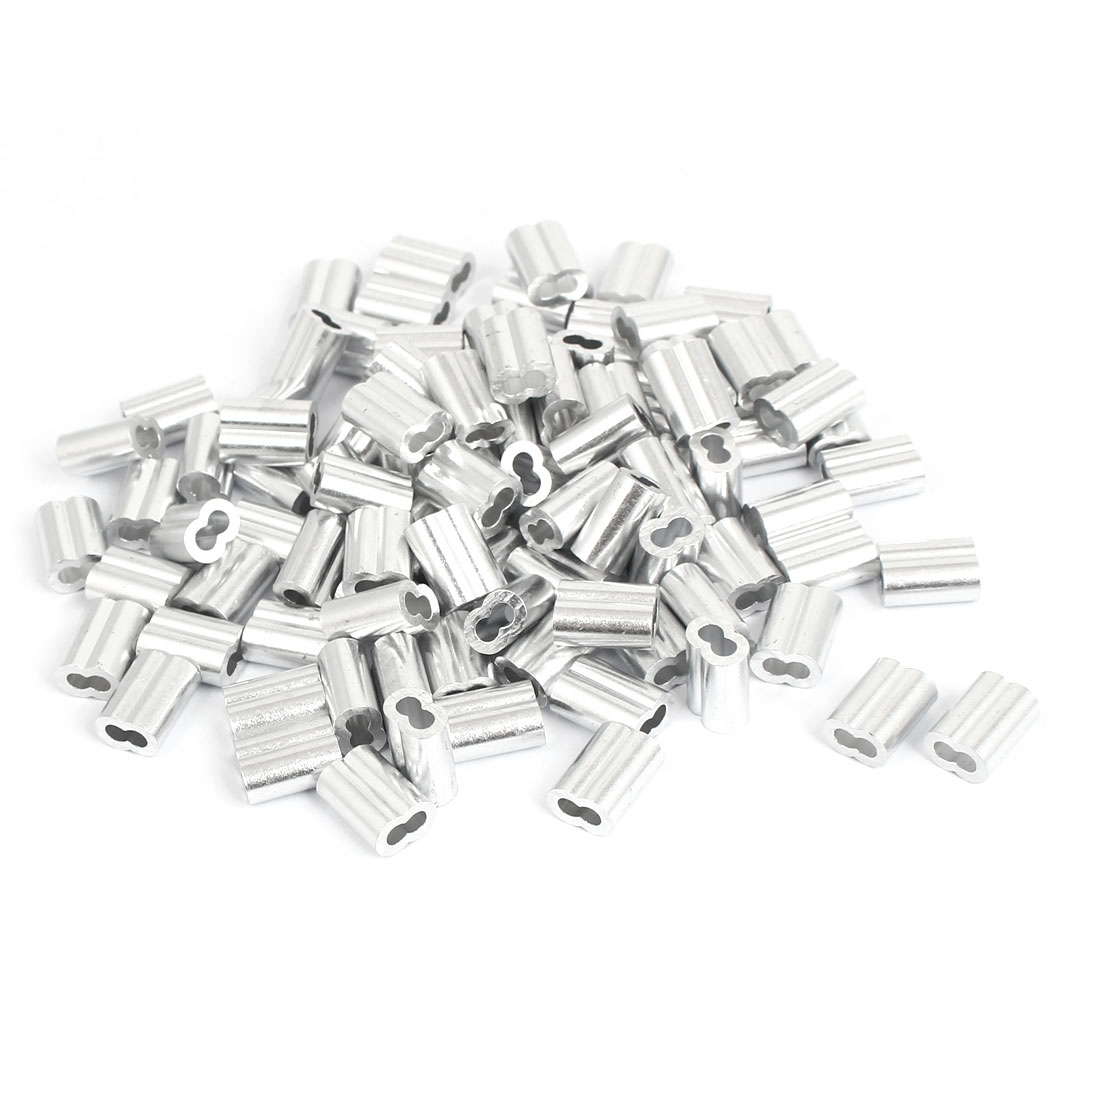 "3mm 1/8"" Wire Rope Aluminum Sleeves Clip Fittings Cable Crimps 100 Pcs"